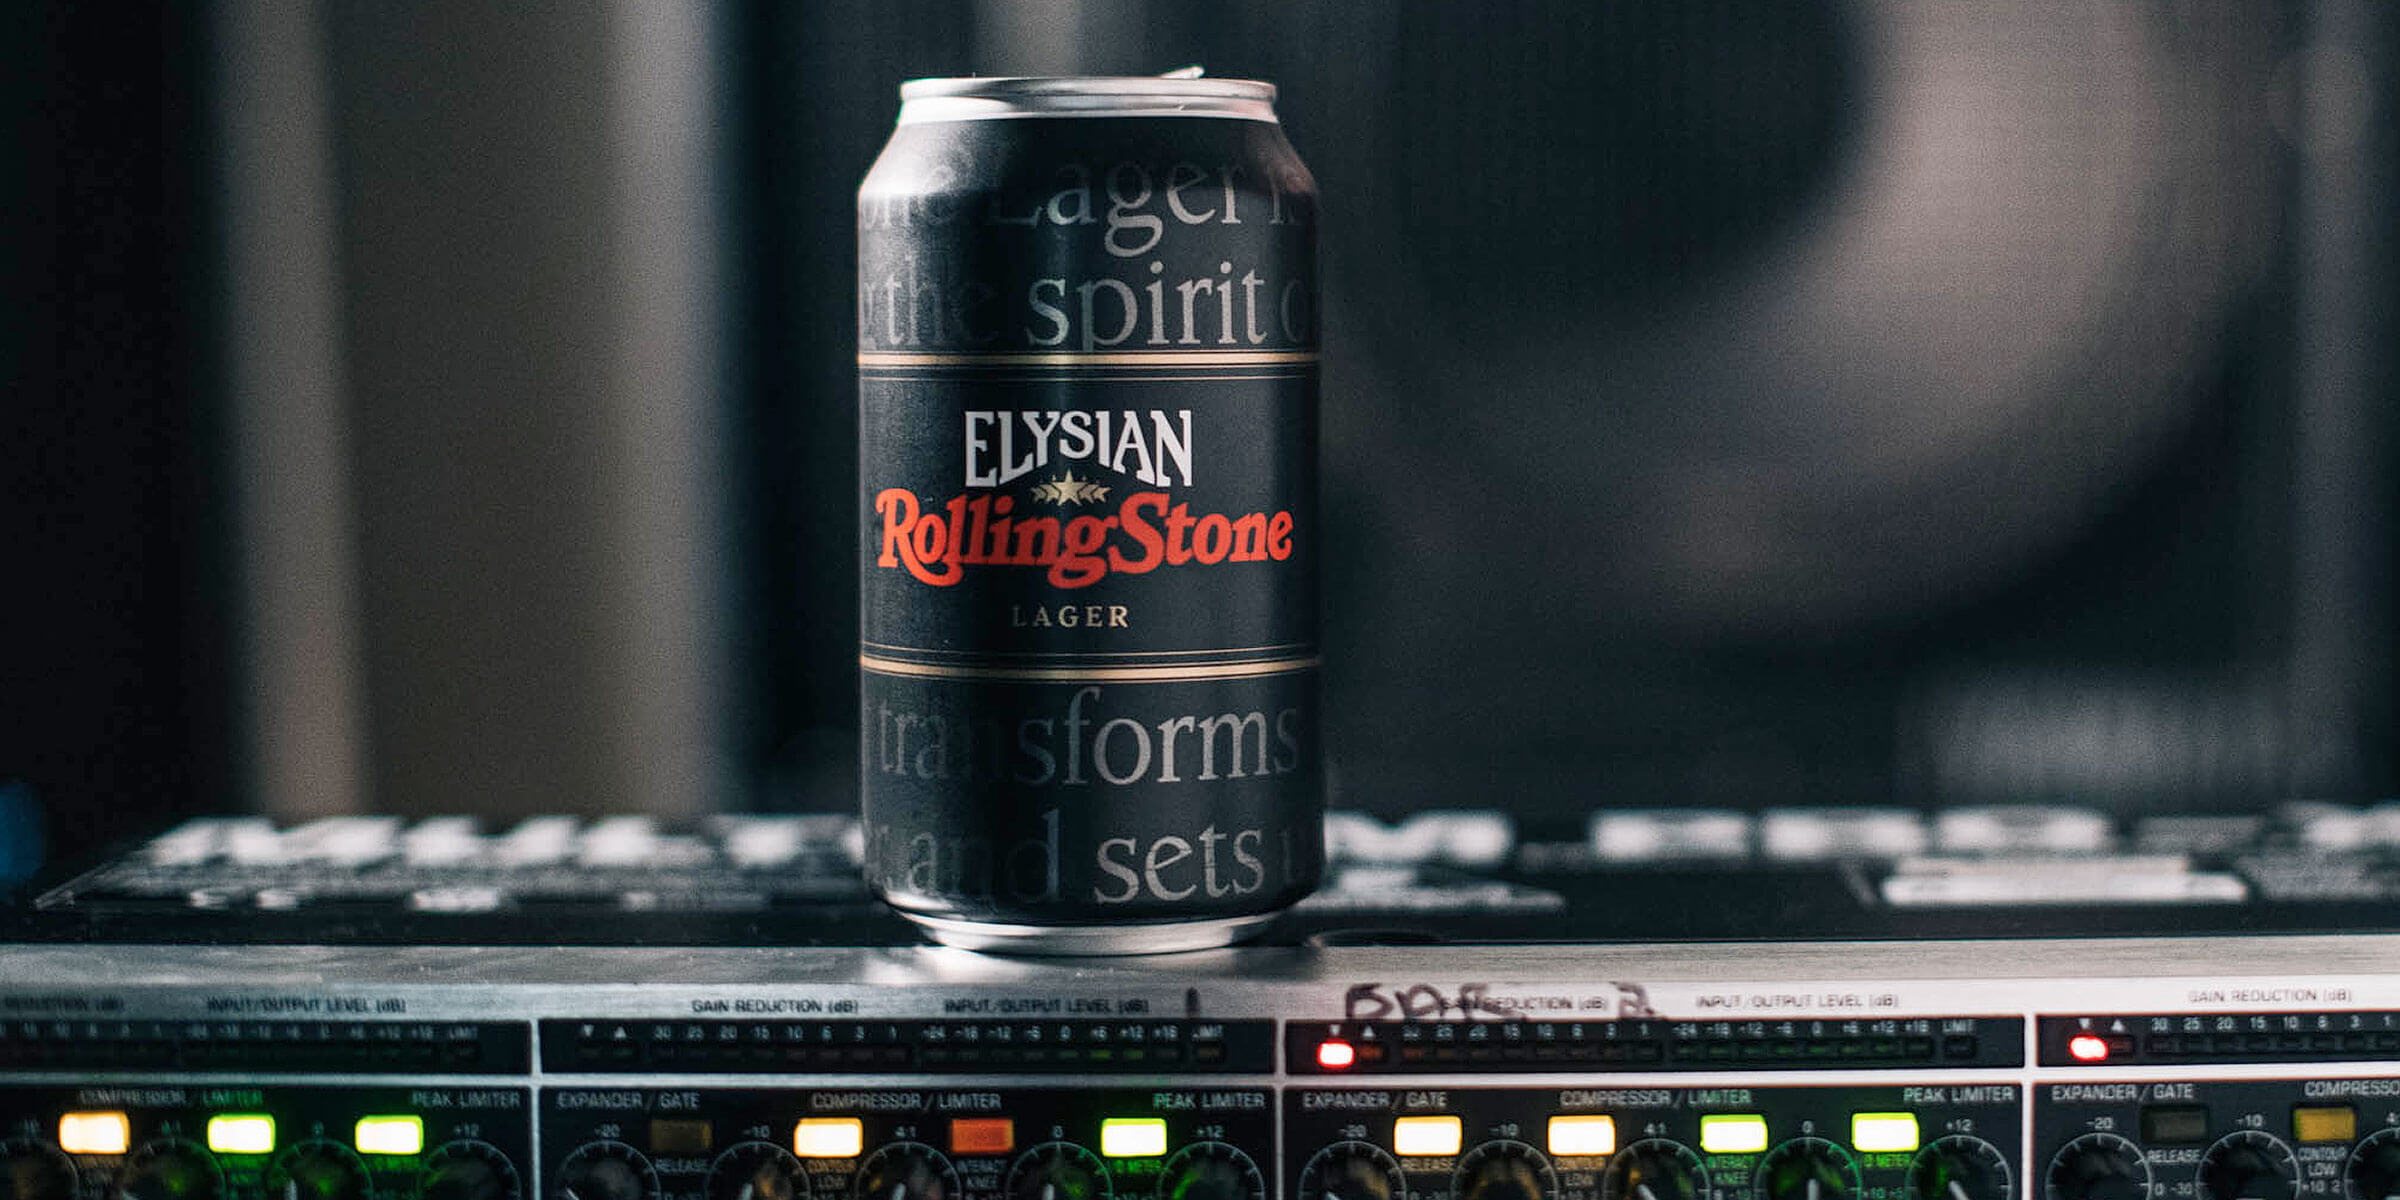 Elysian Brewing Company and music industry publisher Rolling Stone have joined to collaborate on the Elysian Rolling Stone Lager.